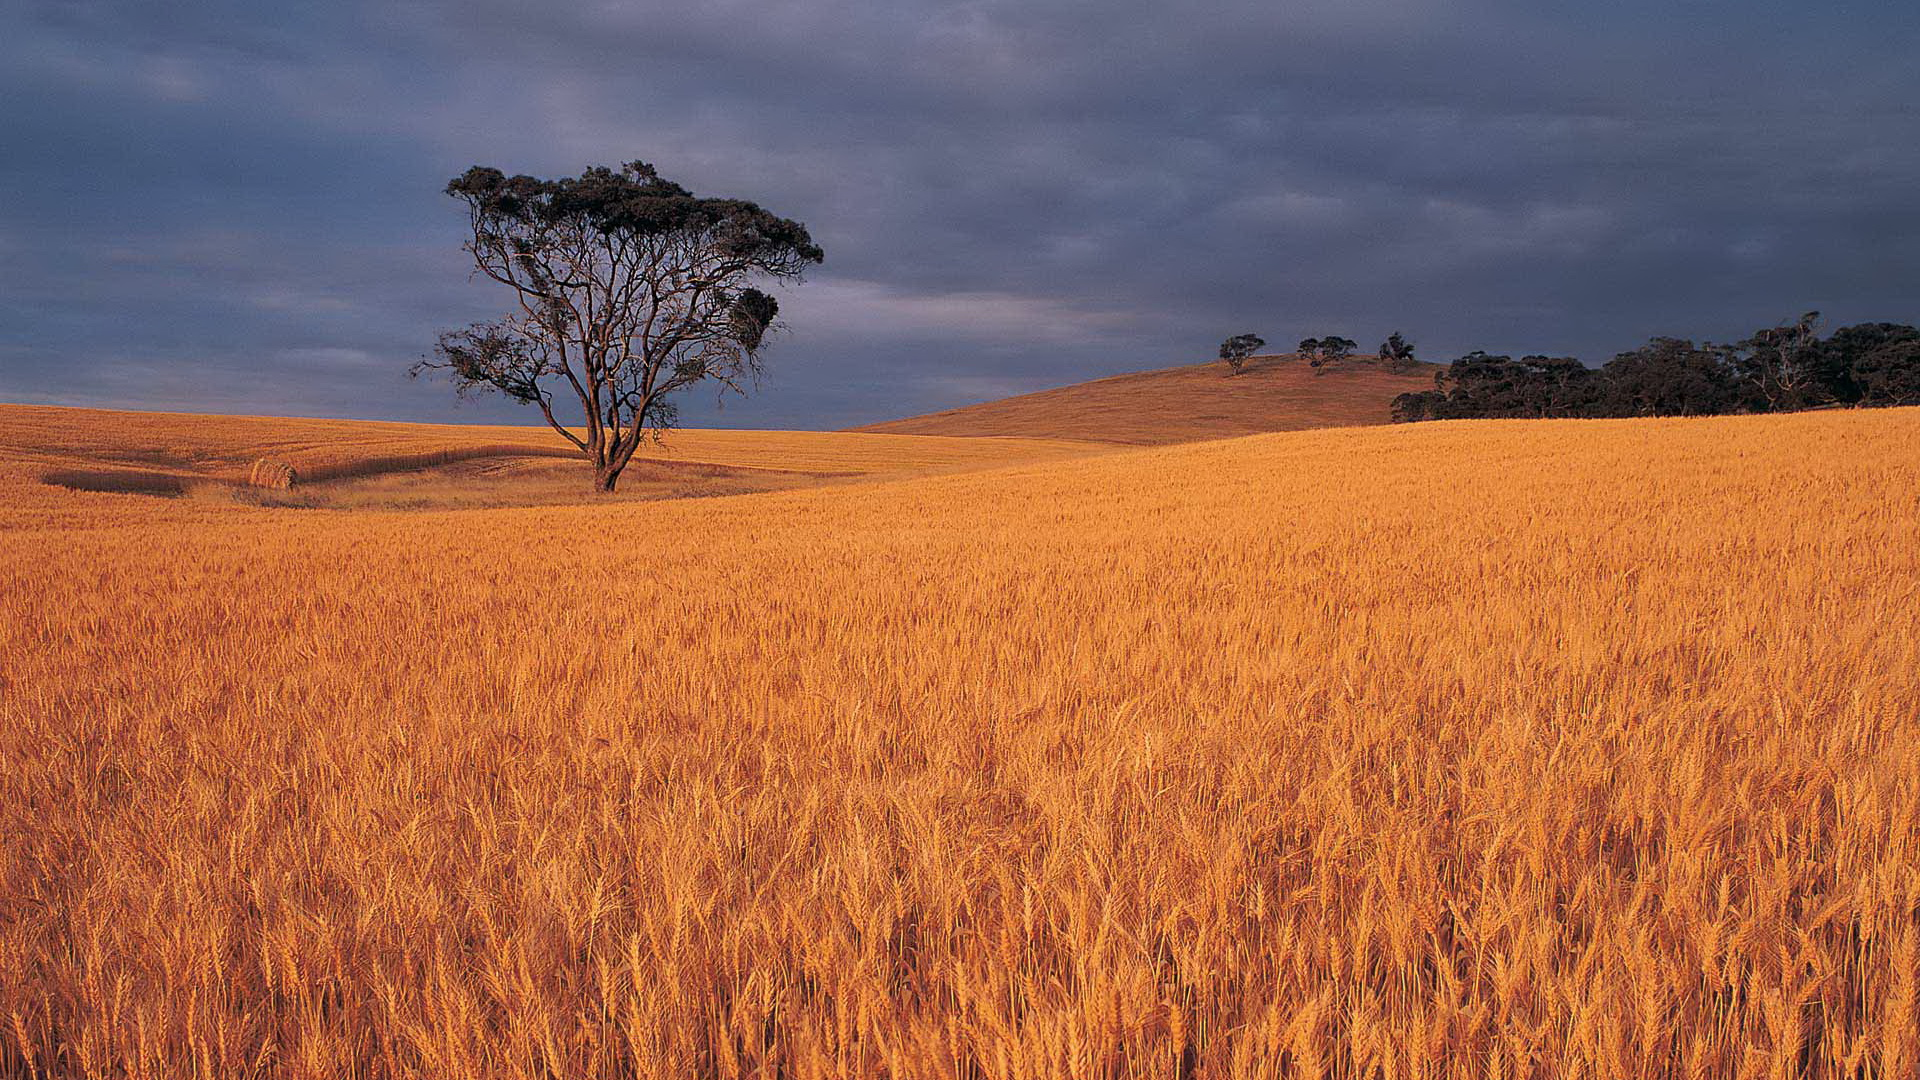 click to free download the wallpaper--Images of Beautiful Nature - Dusk Scene, Golden and Ripe Wheats, Tall Trees Standing in the Middle 1920X1080 free wallpaper download